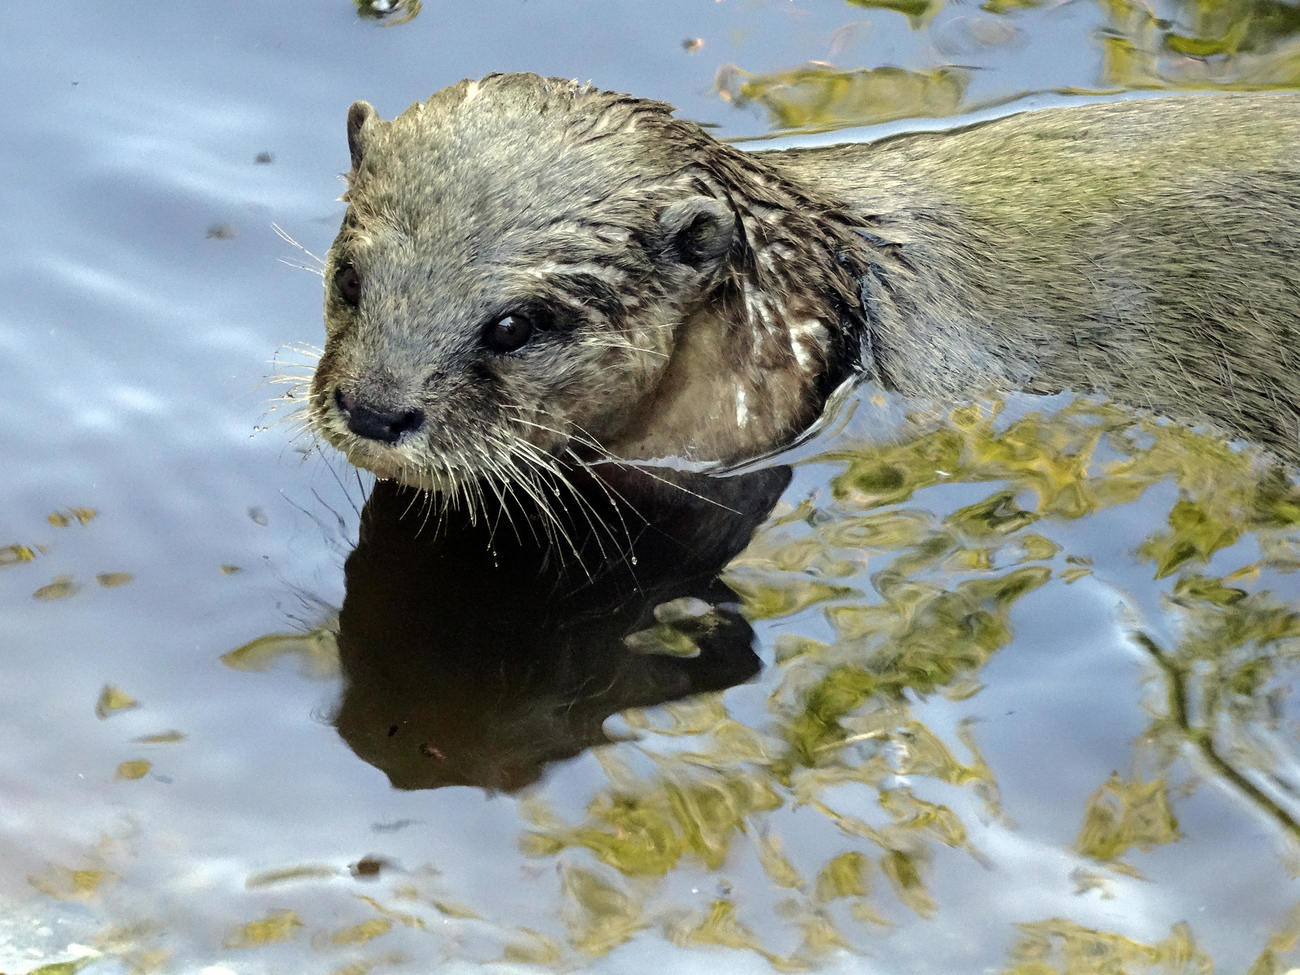 Loutre cendree - Asian small-clawed otter by kordouane